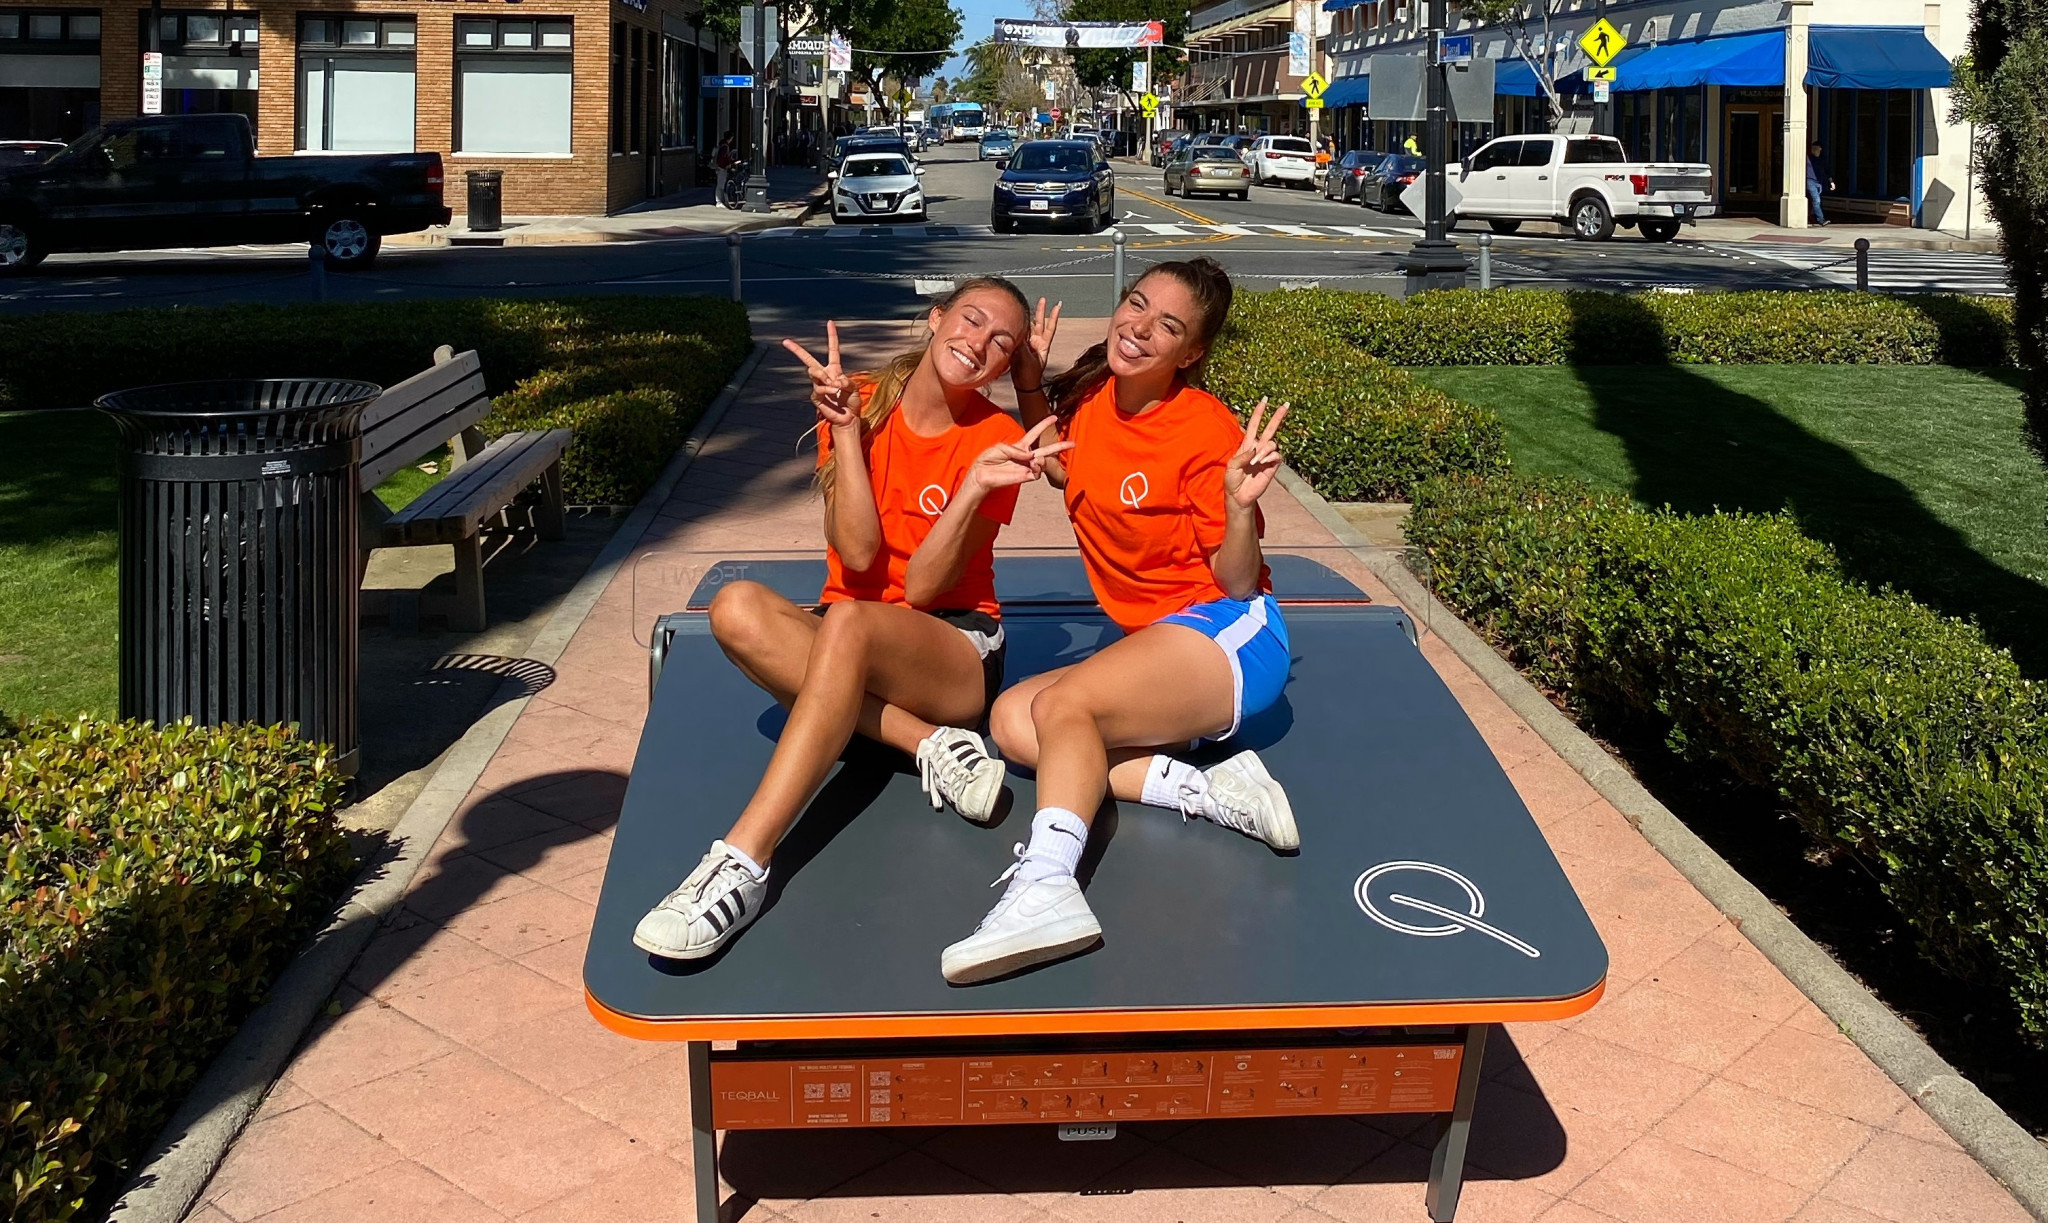 Teqball pair praise sport's level playing field for men and women